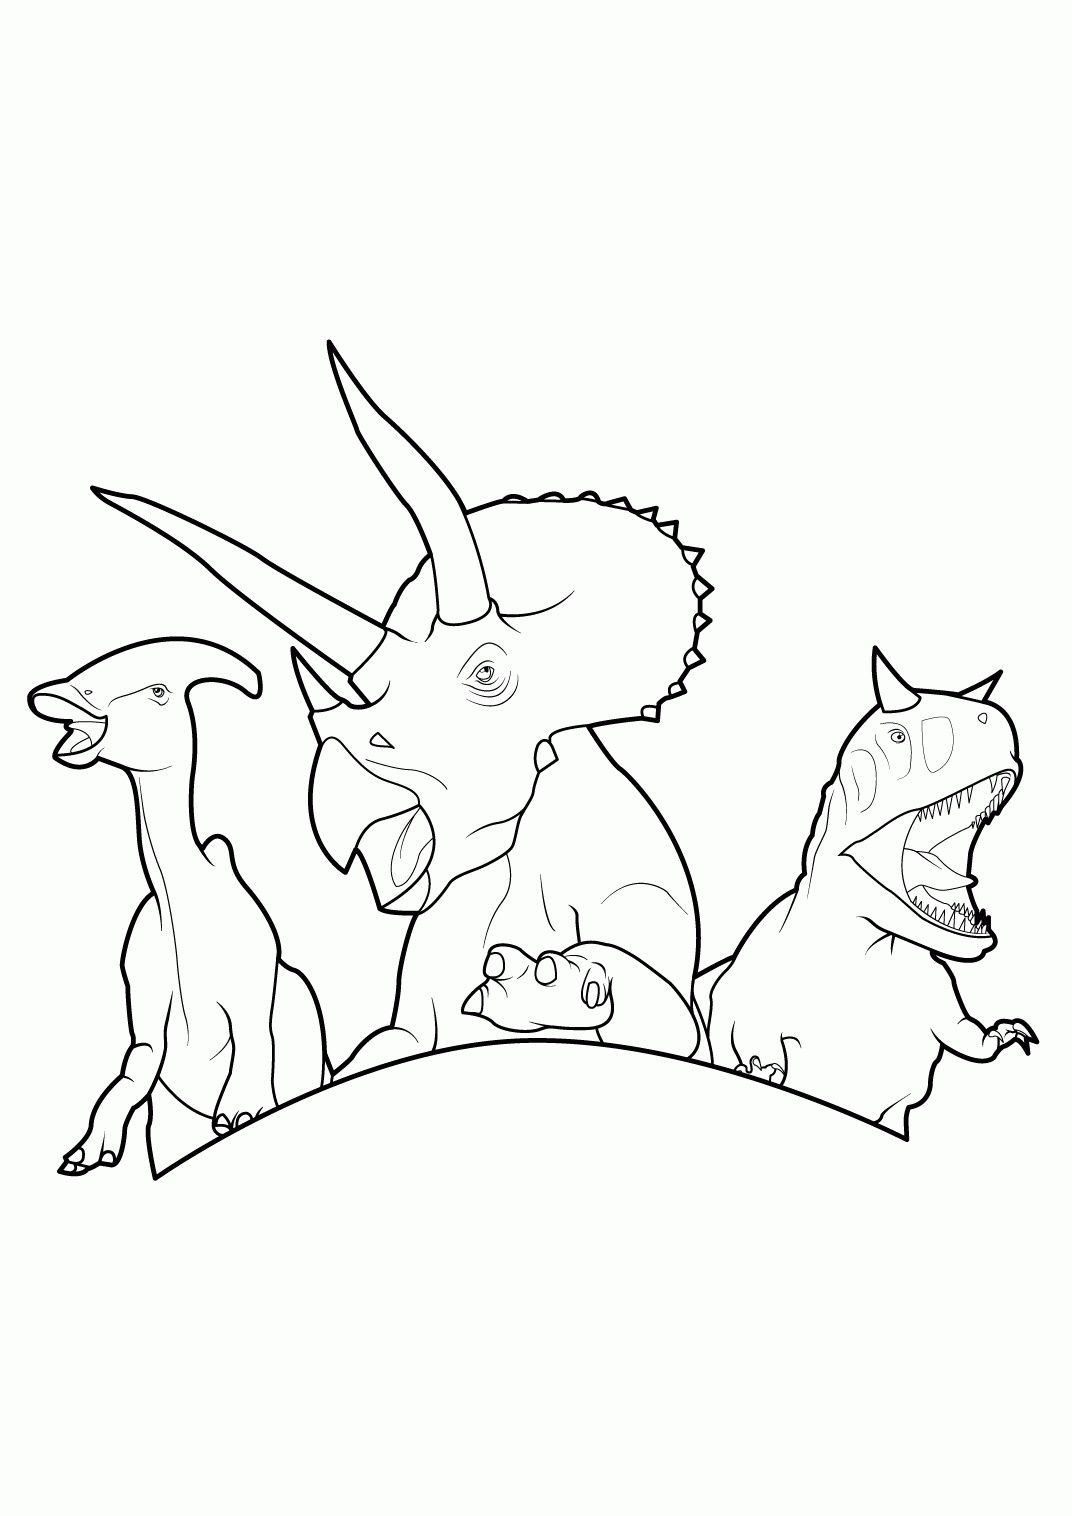 Printable Dinosaur Coloring Pages For Kindergarten K5 Worksheets Dinosaur Coloring Pages Printable Dinosaur Coloring Pages Dinosaur Coloring